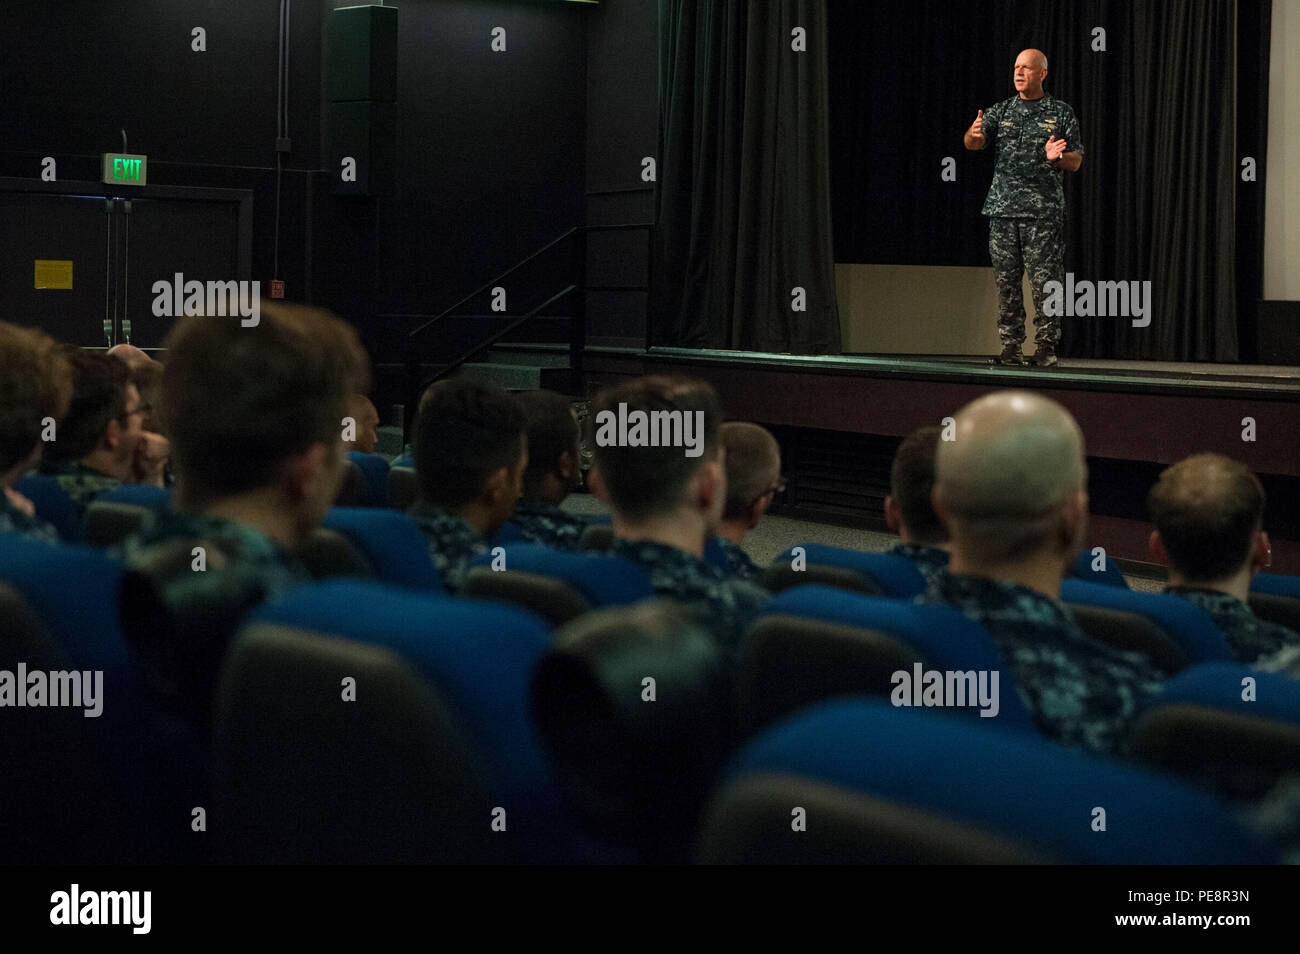 Adm. Scott Swift, commander U.S. Pacific Fleet, speaks to more than 350 Sailors at an all-hands call held at Pearl Harbor. Swift co-hosted the all-hands call with Pacific Fleet Master Chief Suz Whitman and they addressed questions about maternity and paternity leave, deployment schedules, physical fitness and overall state of the Pacific Fleet. (U.S. Air Force photo by Staff Sgt. Christopher Hubenthal) - Stock Image